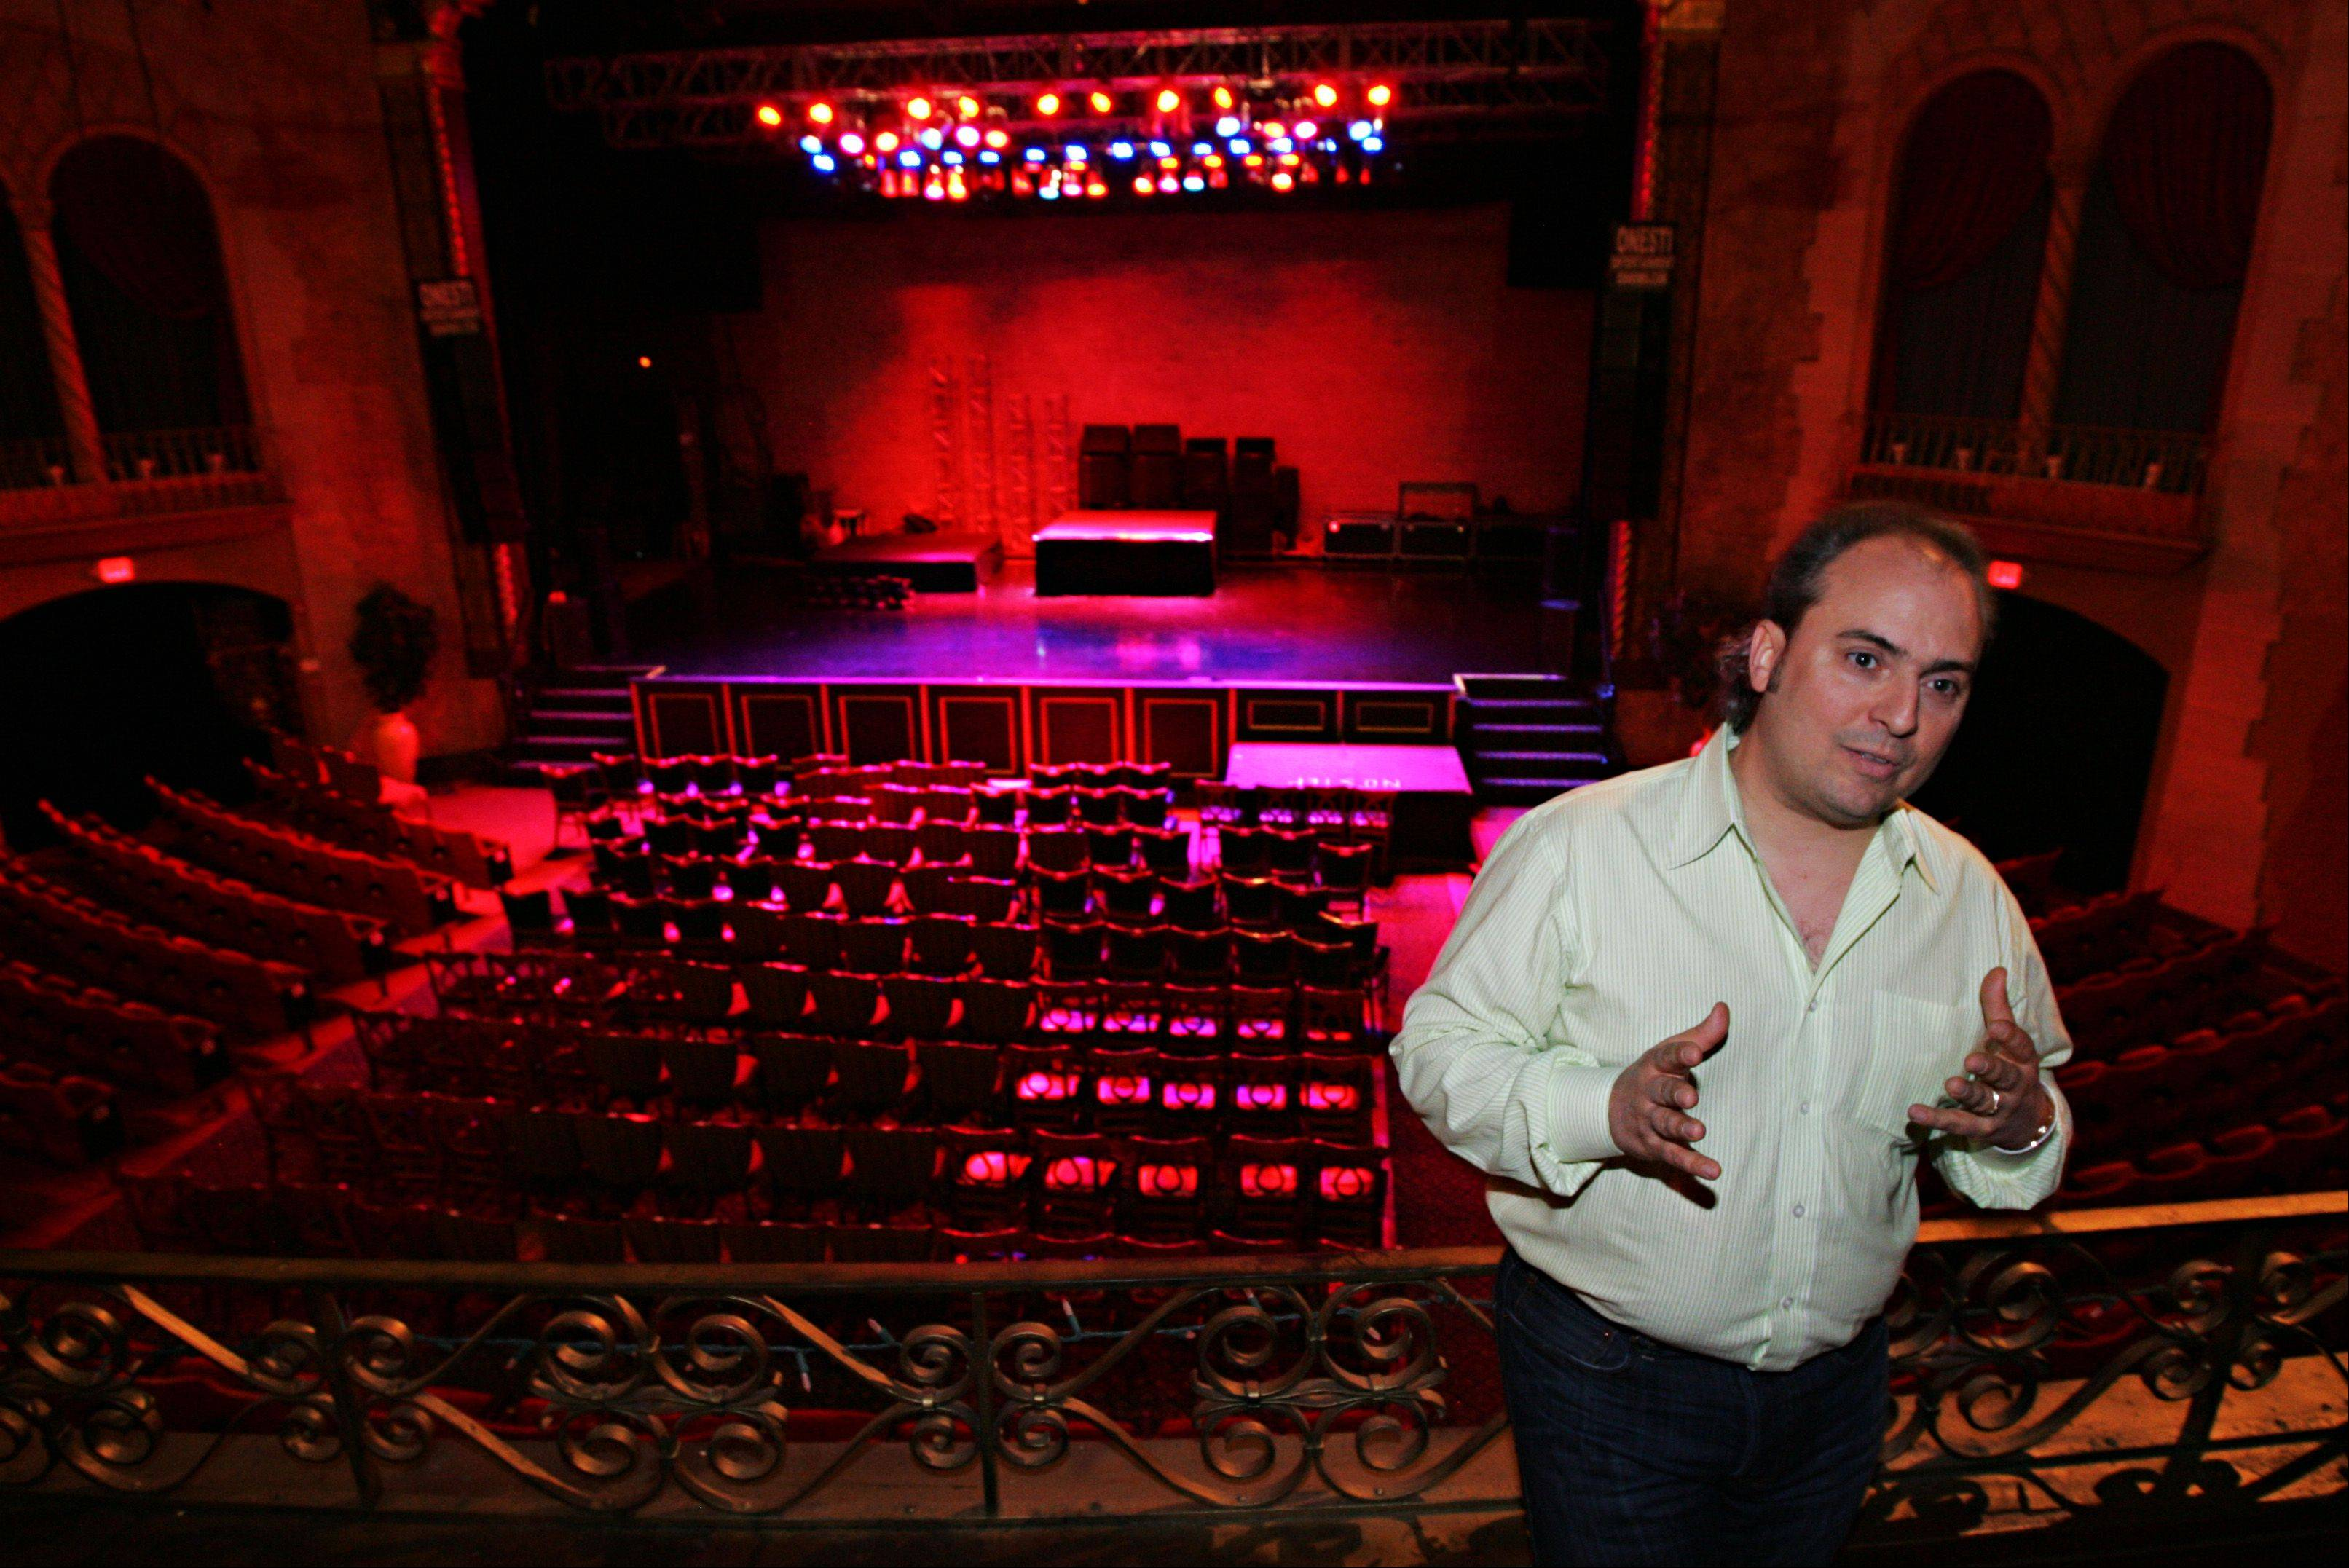 Arcada Theatre owner Ron Onesti has been able to consistently bring top acts to the venue.